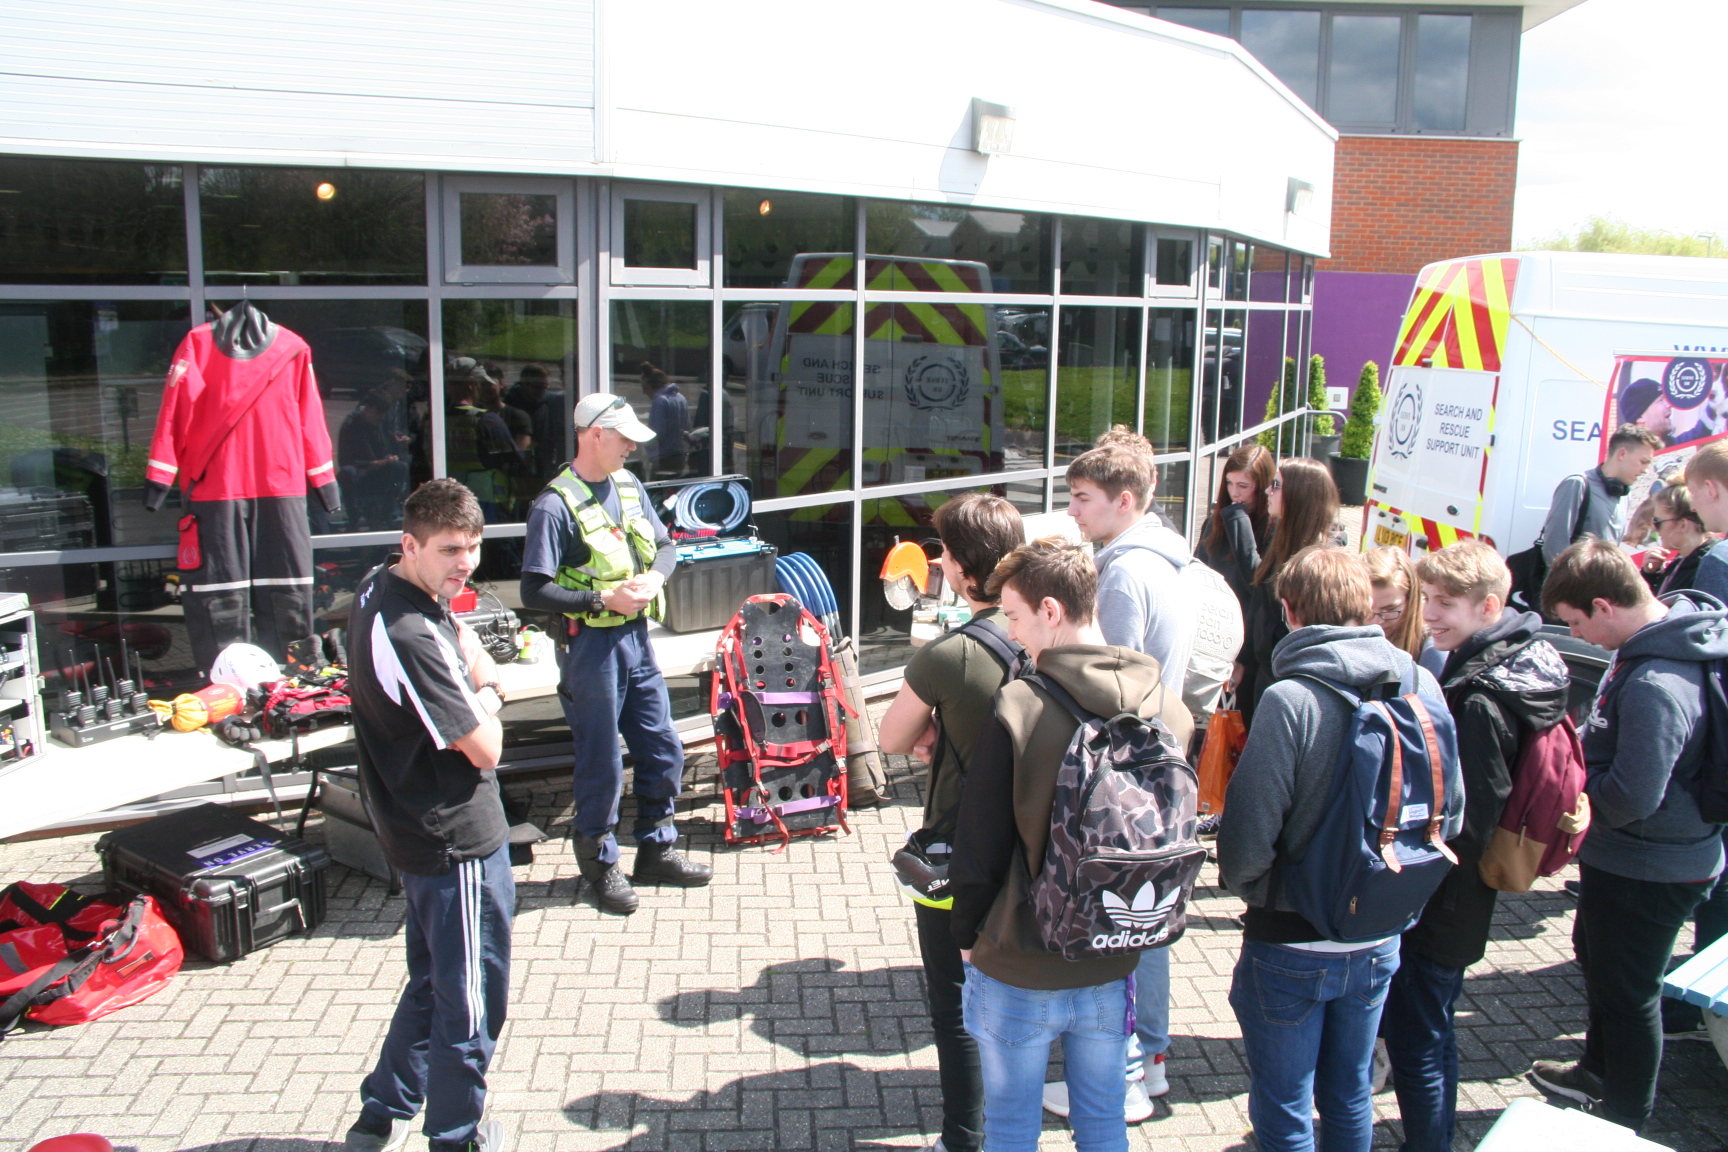 Serve On Community Resilience Team volunteers man our stall at the Basingstoke College of Technology Health and Wellbeing Fair